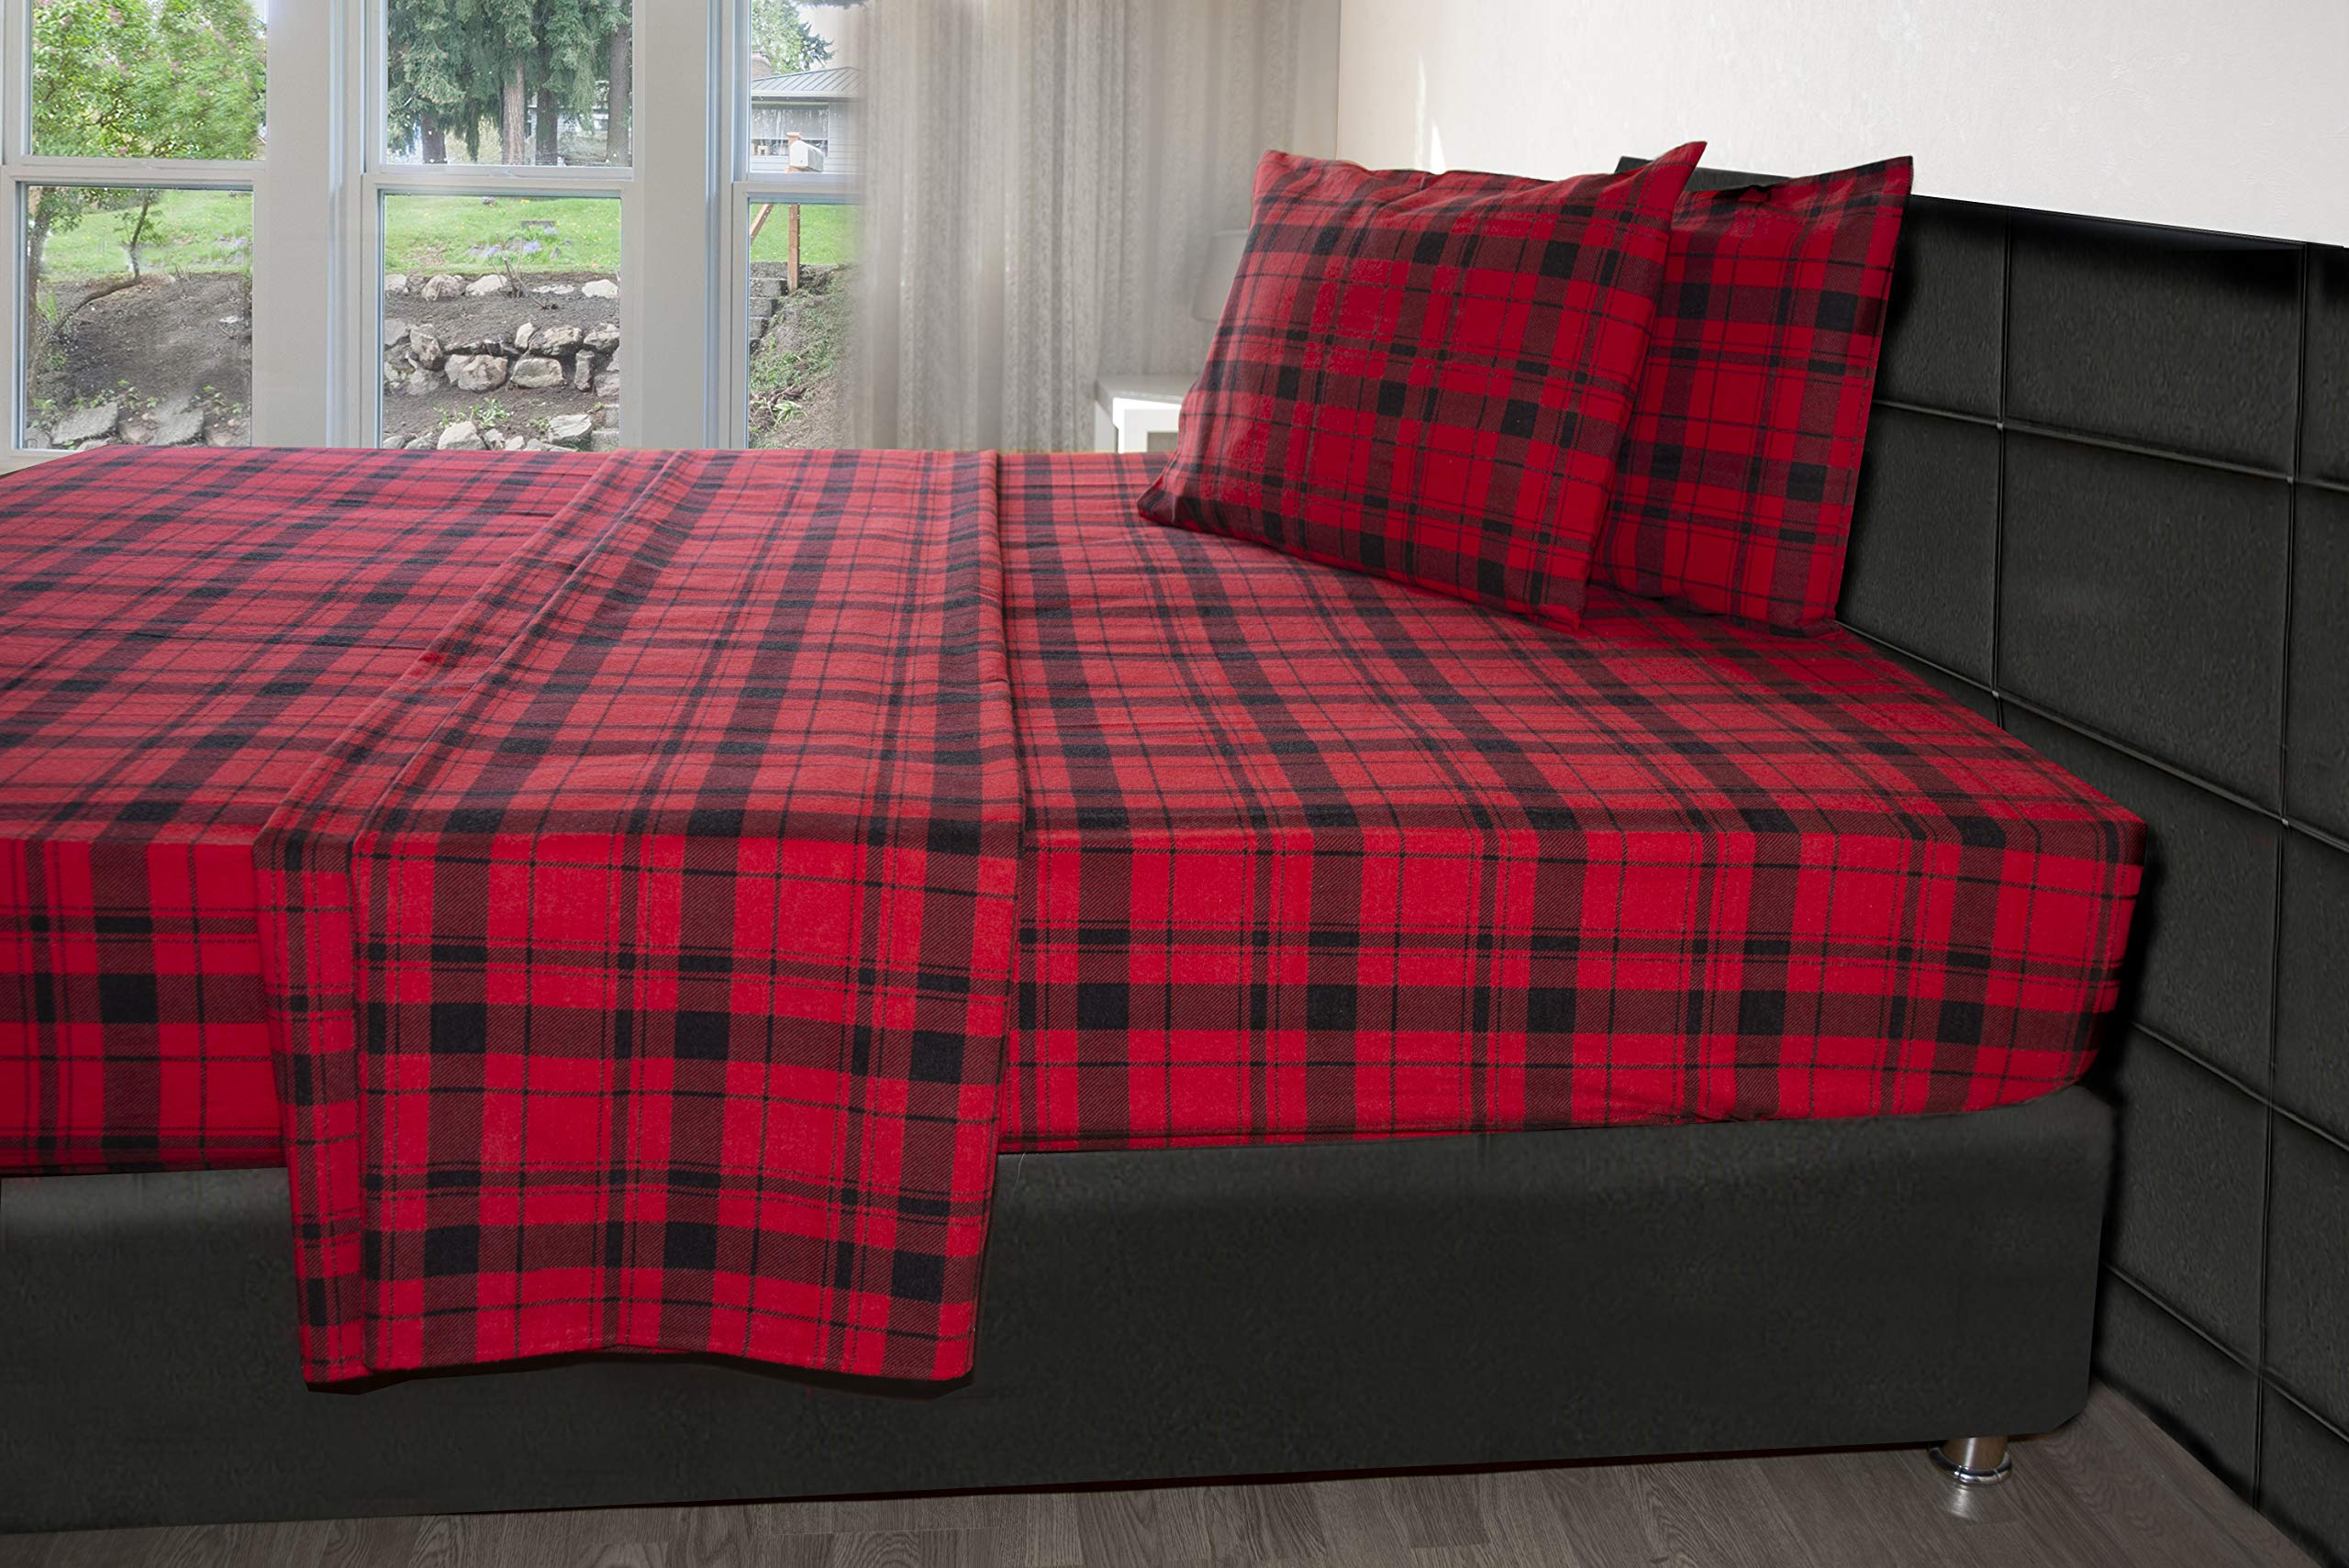 Friends at Home Turkish Cotton 180 GSM Heavyweight Flannel Winter Sheets Set (Plaid 1, Twin/Single)